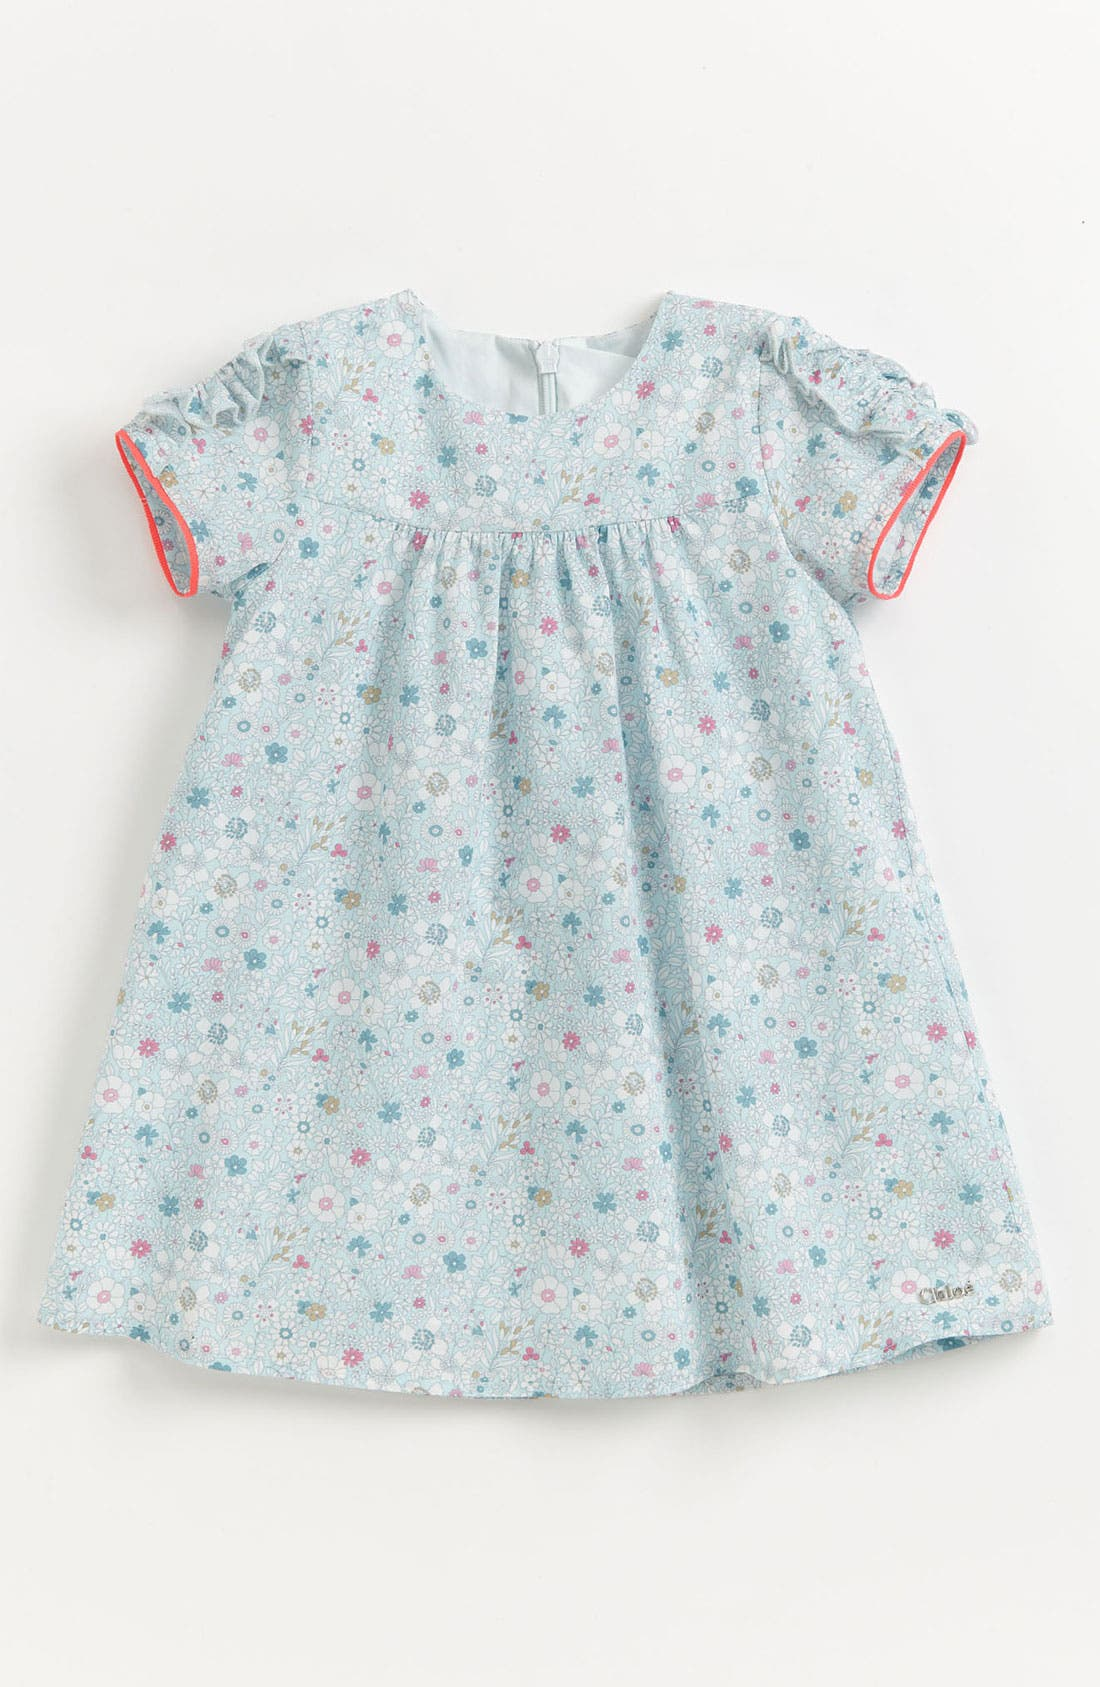 Main Image - Chloé 'Liberty Print' Floral Dress (Toddler)